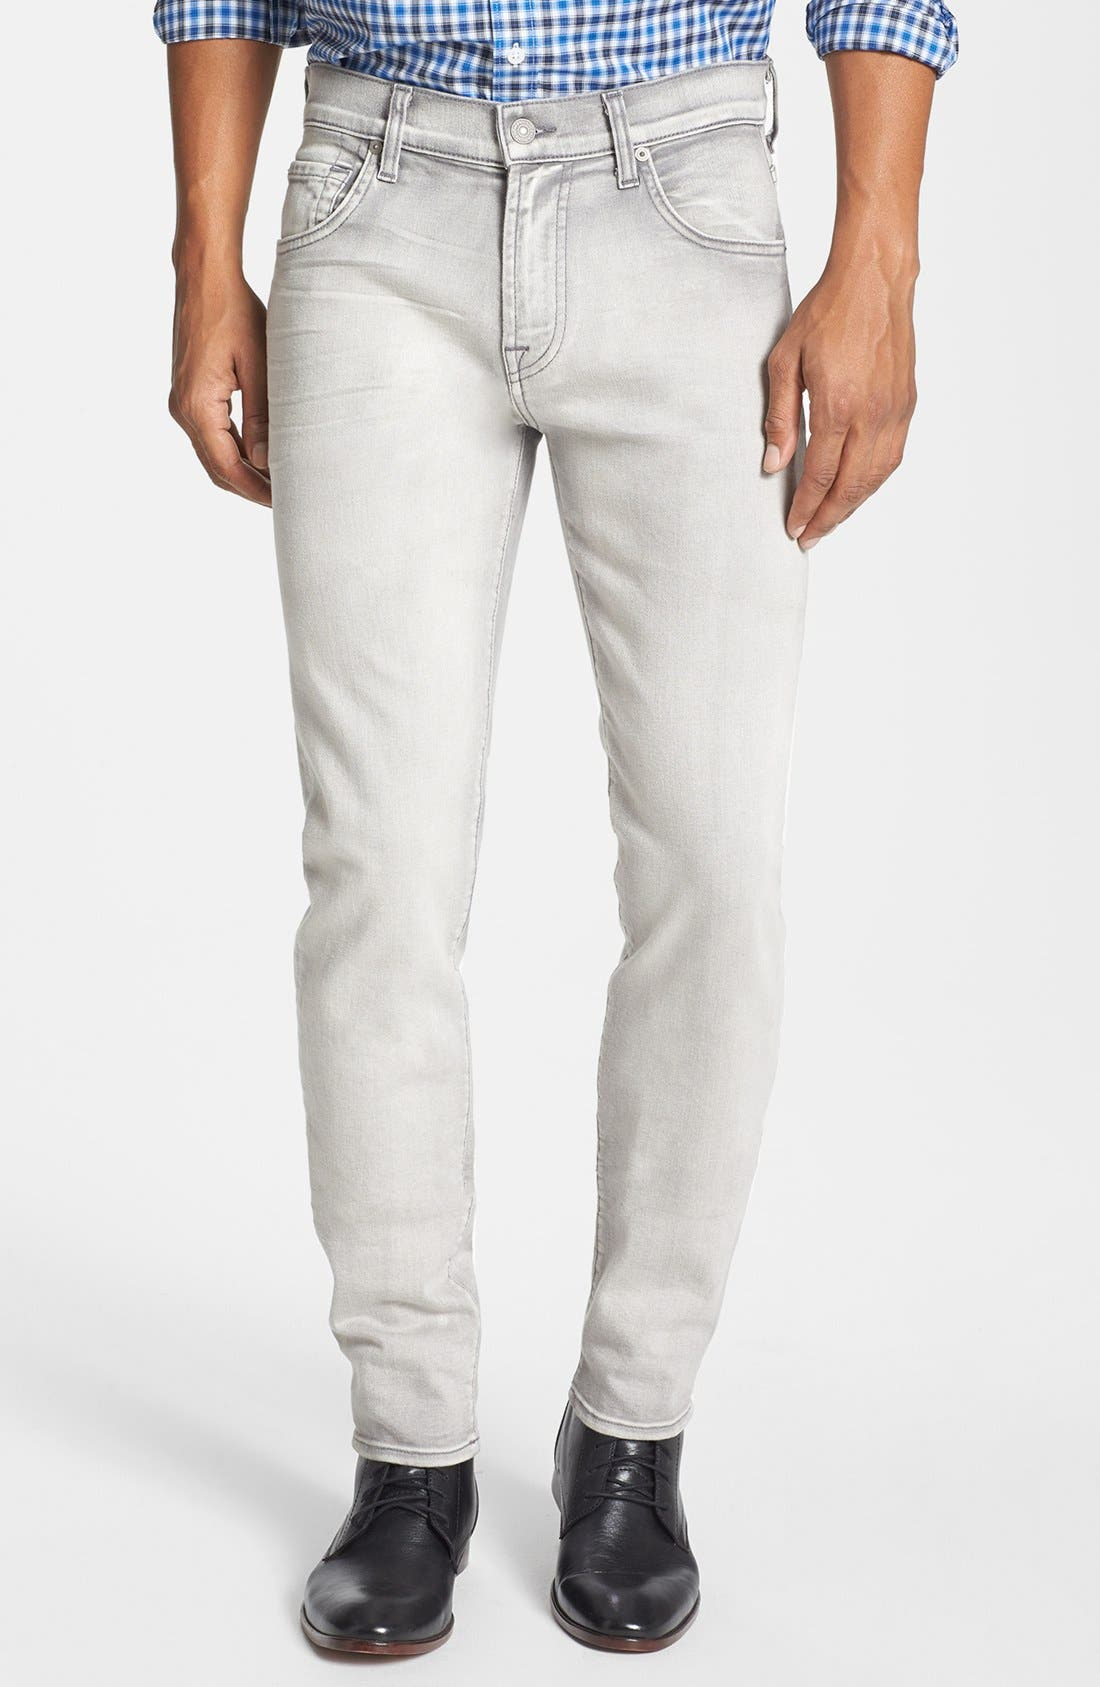 Main Image - 7 For All Mankind® 'Paxtyn' Skinny Fit Jeans (Weathered White)